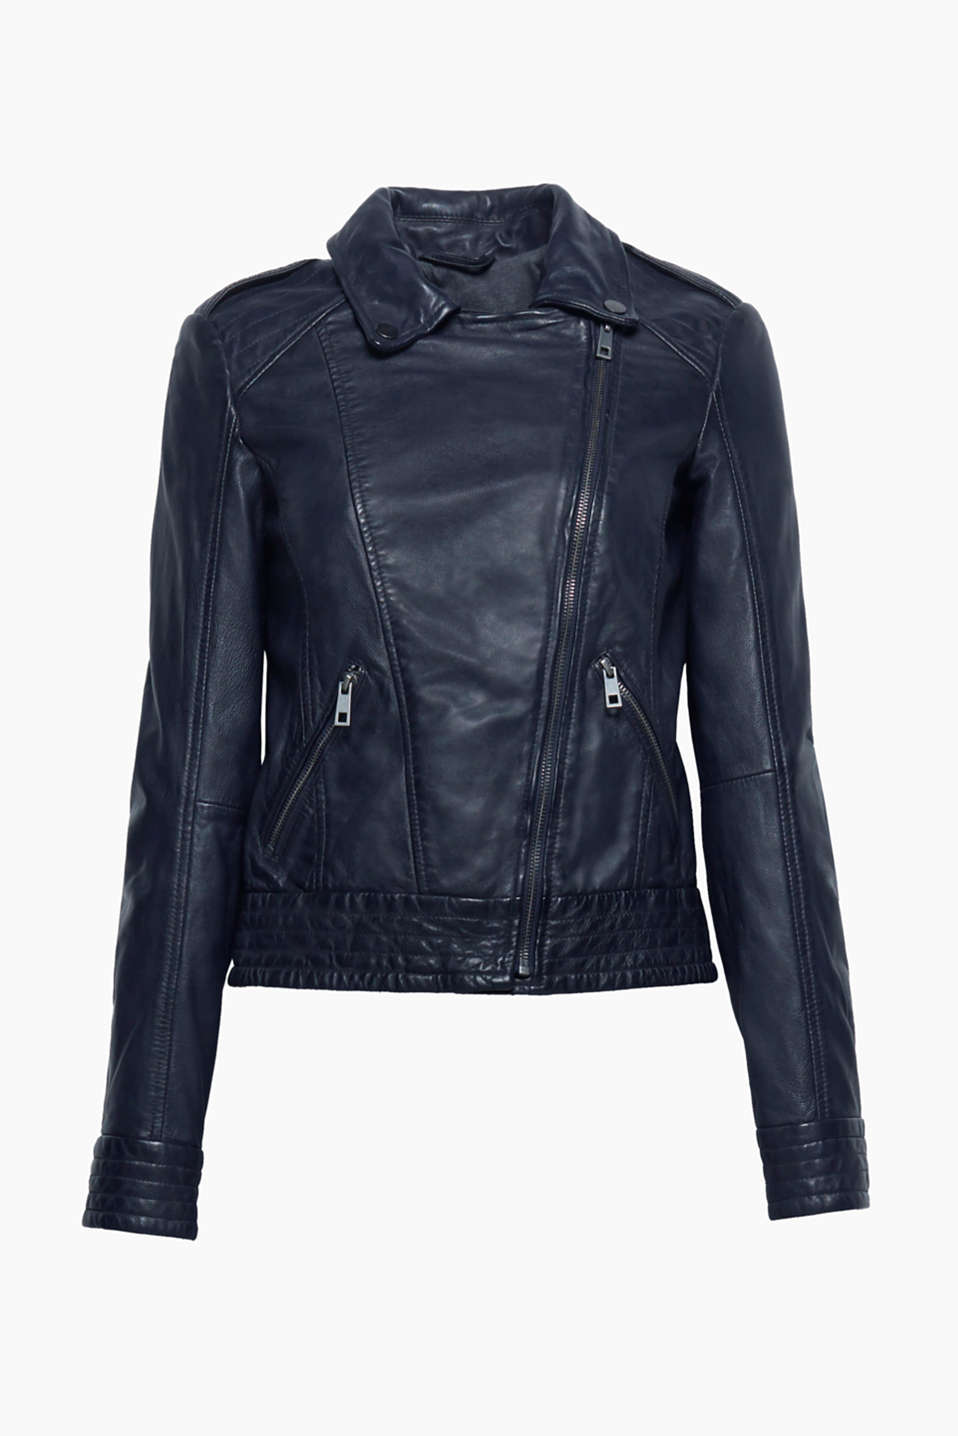 This black leather jacket in a biker style is a cool, classic, versatile basic for every modern wardrobe!